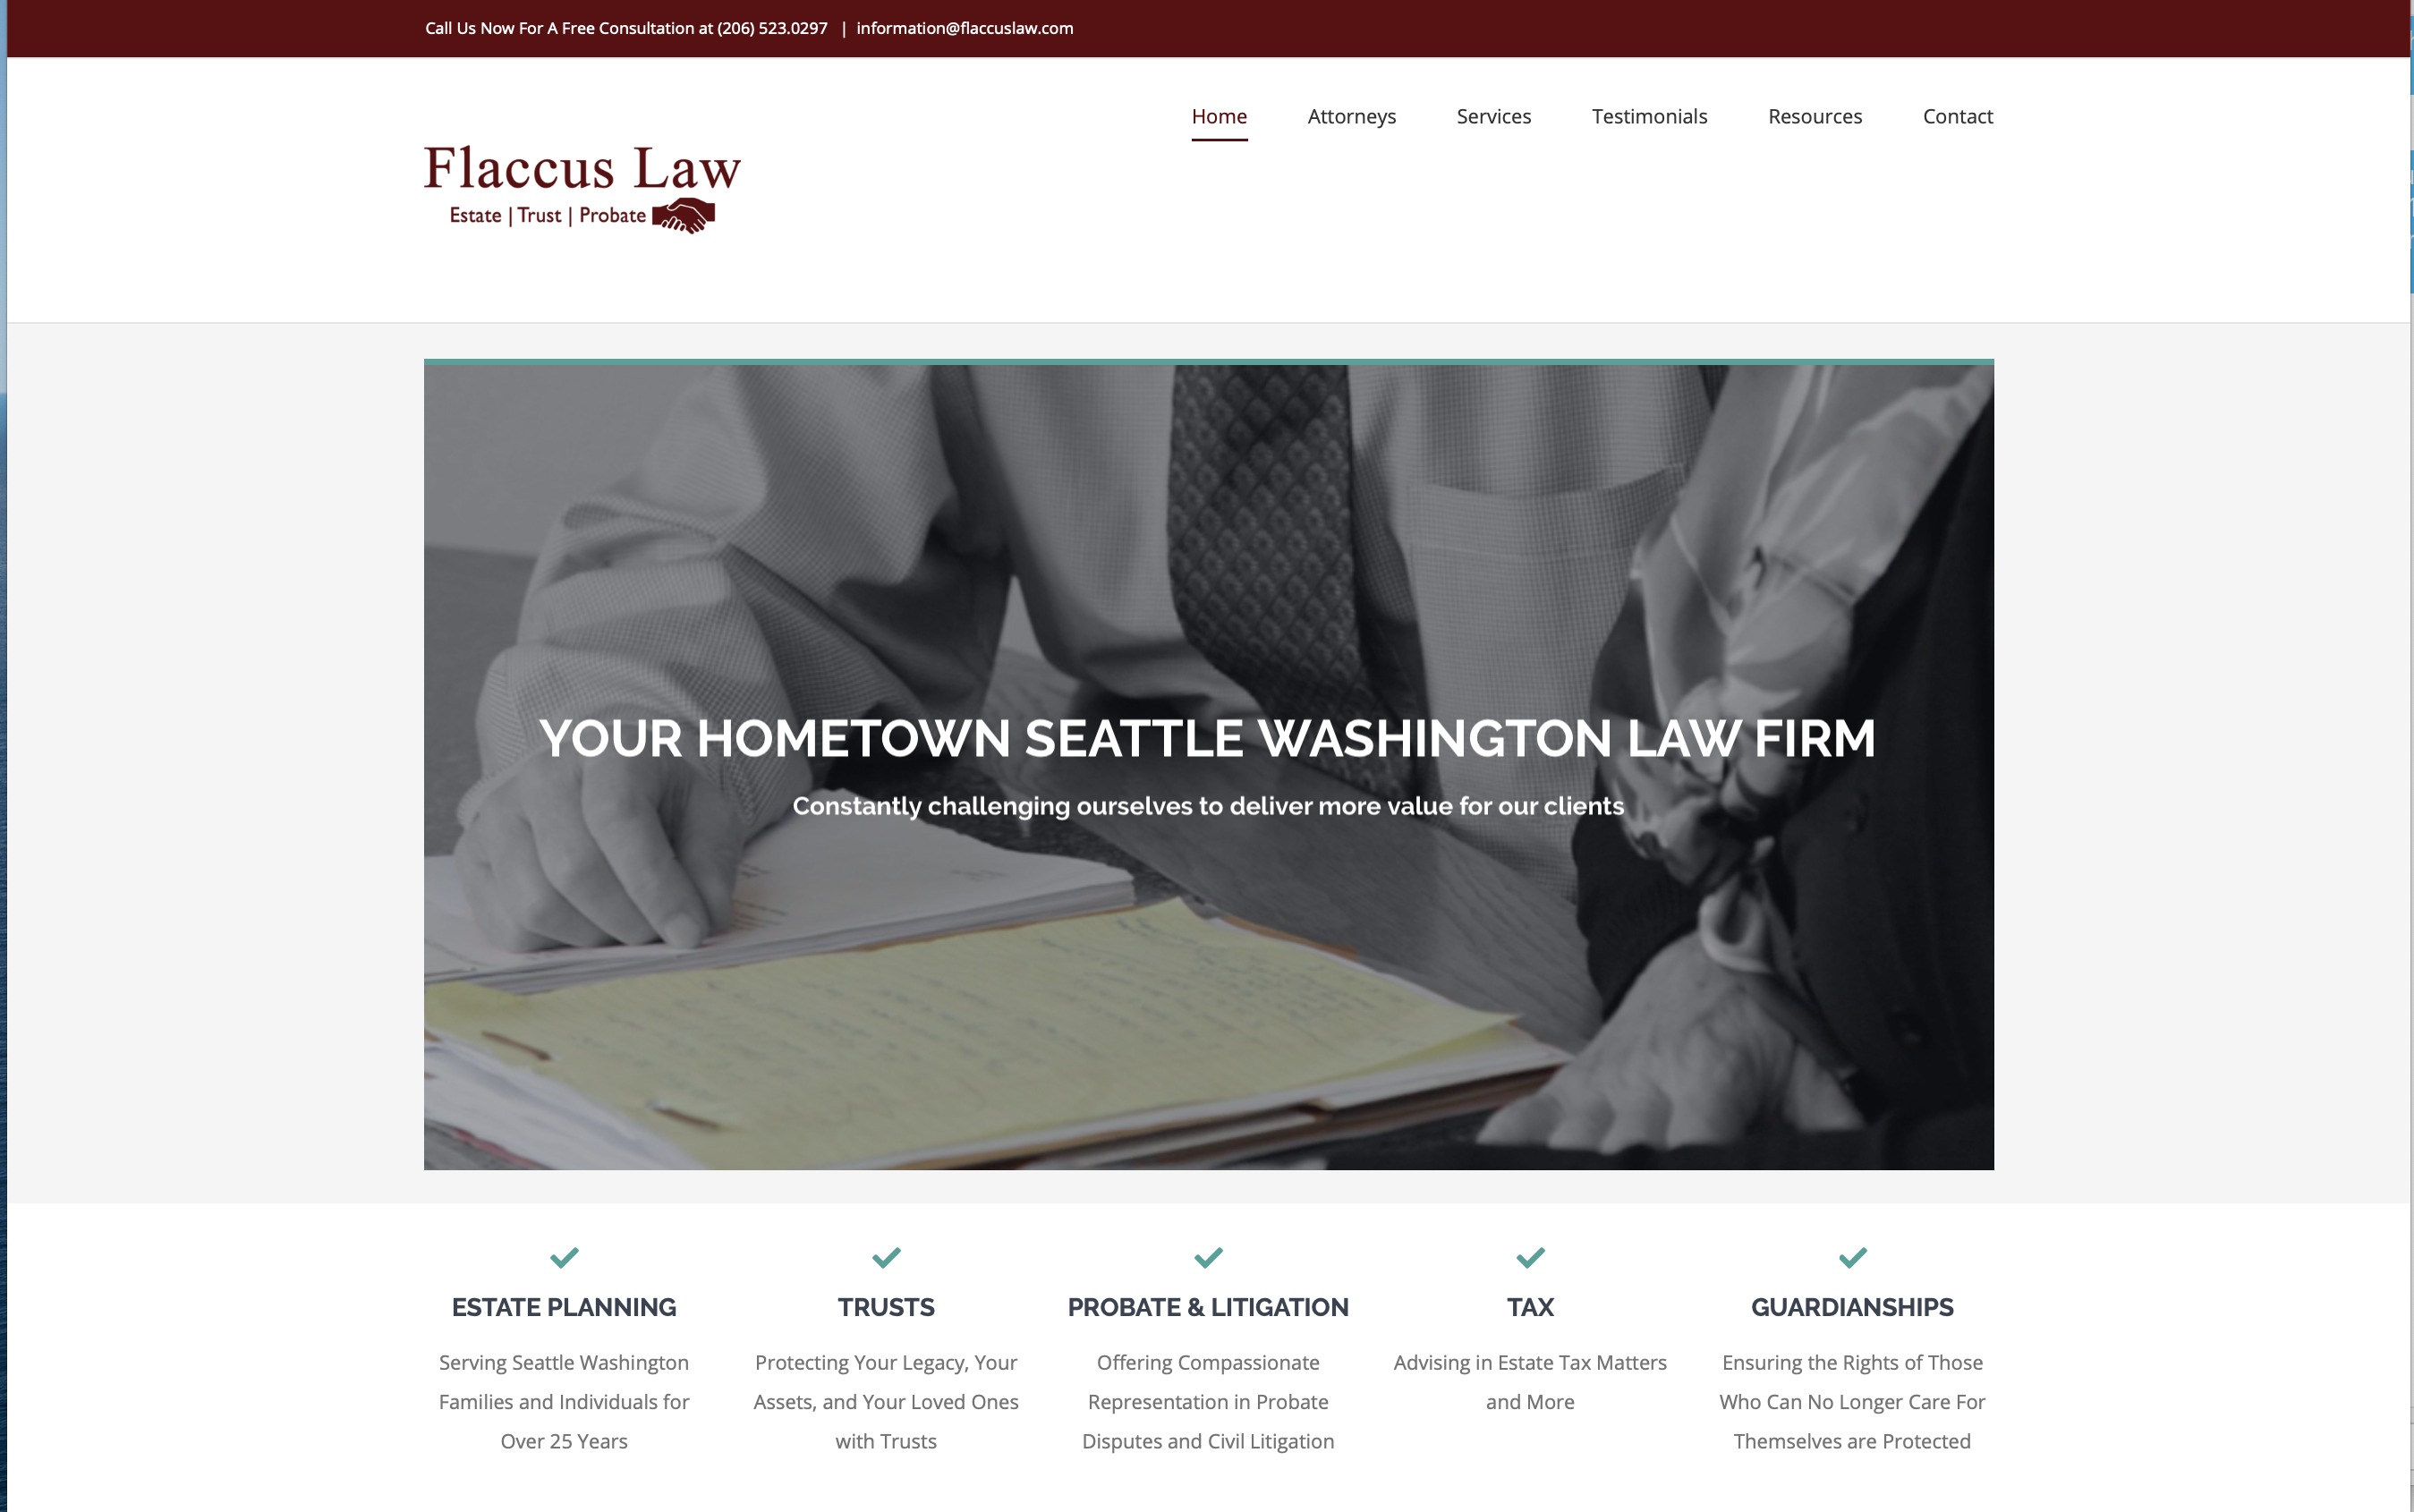 Flaccus Law Seattle Washington